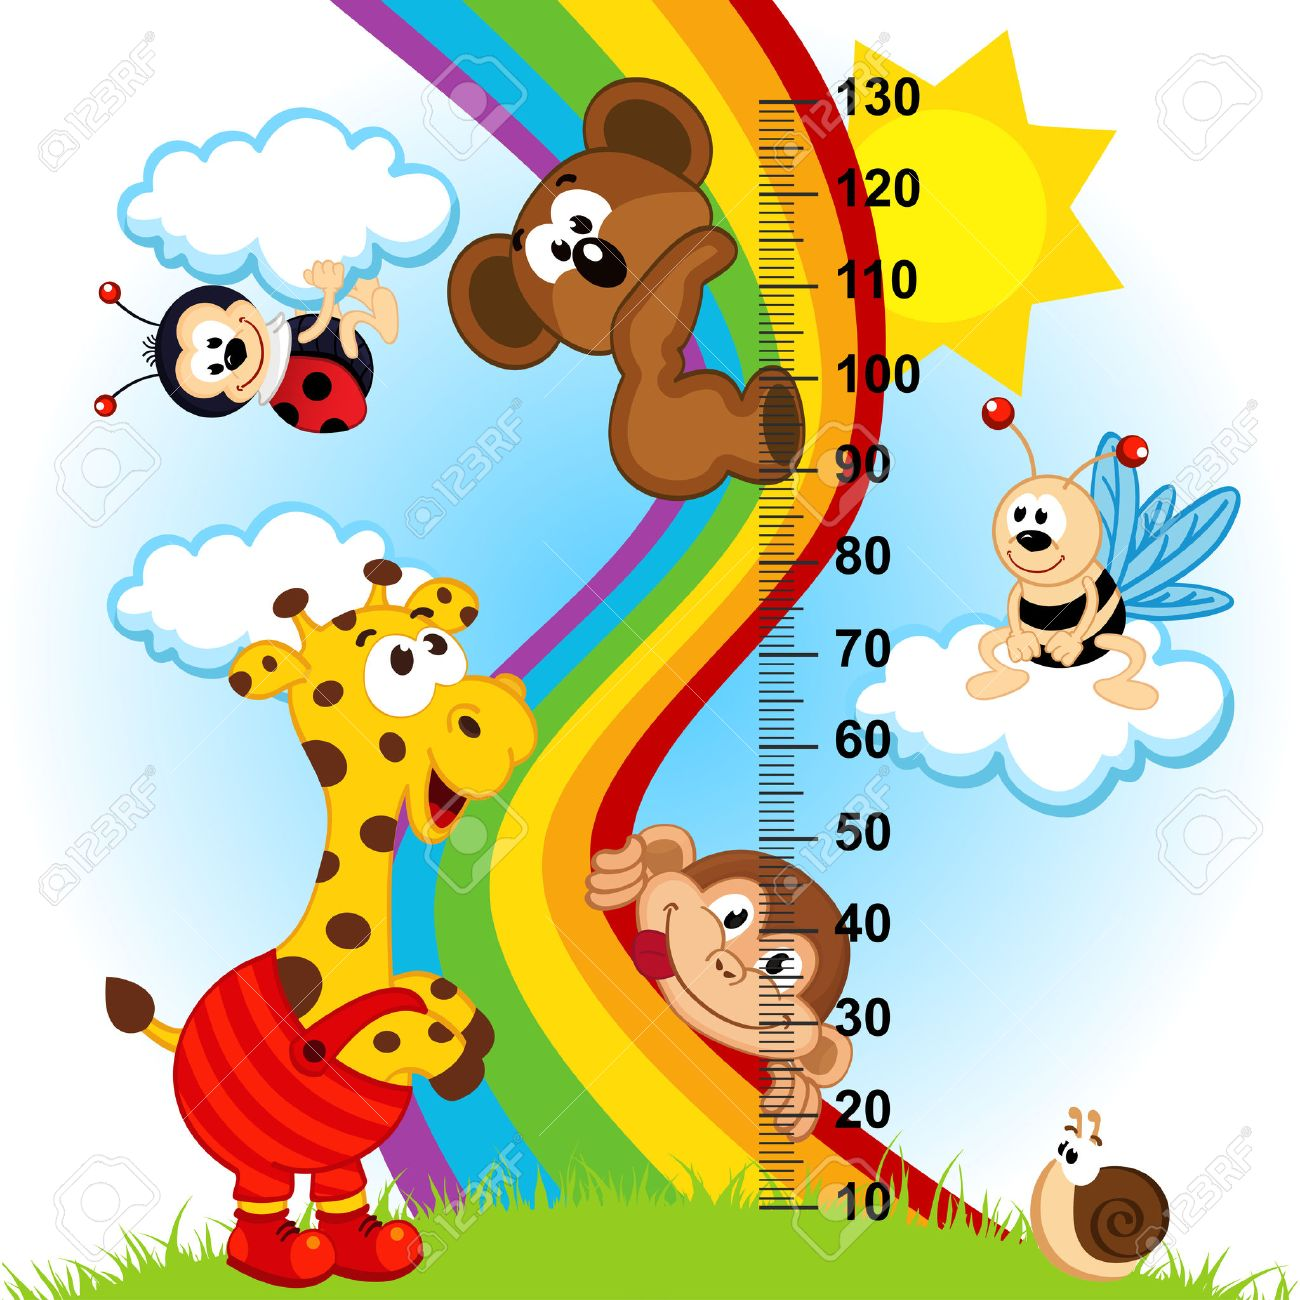 baby height measure  in original proportions 1 to 4  - vector illustration, eps Standard-Bild - 30558702